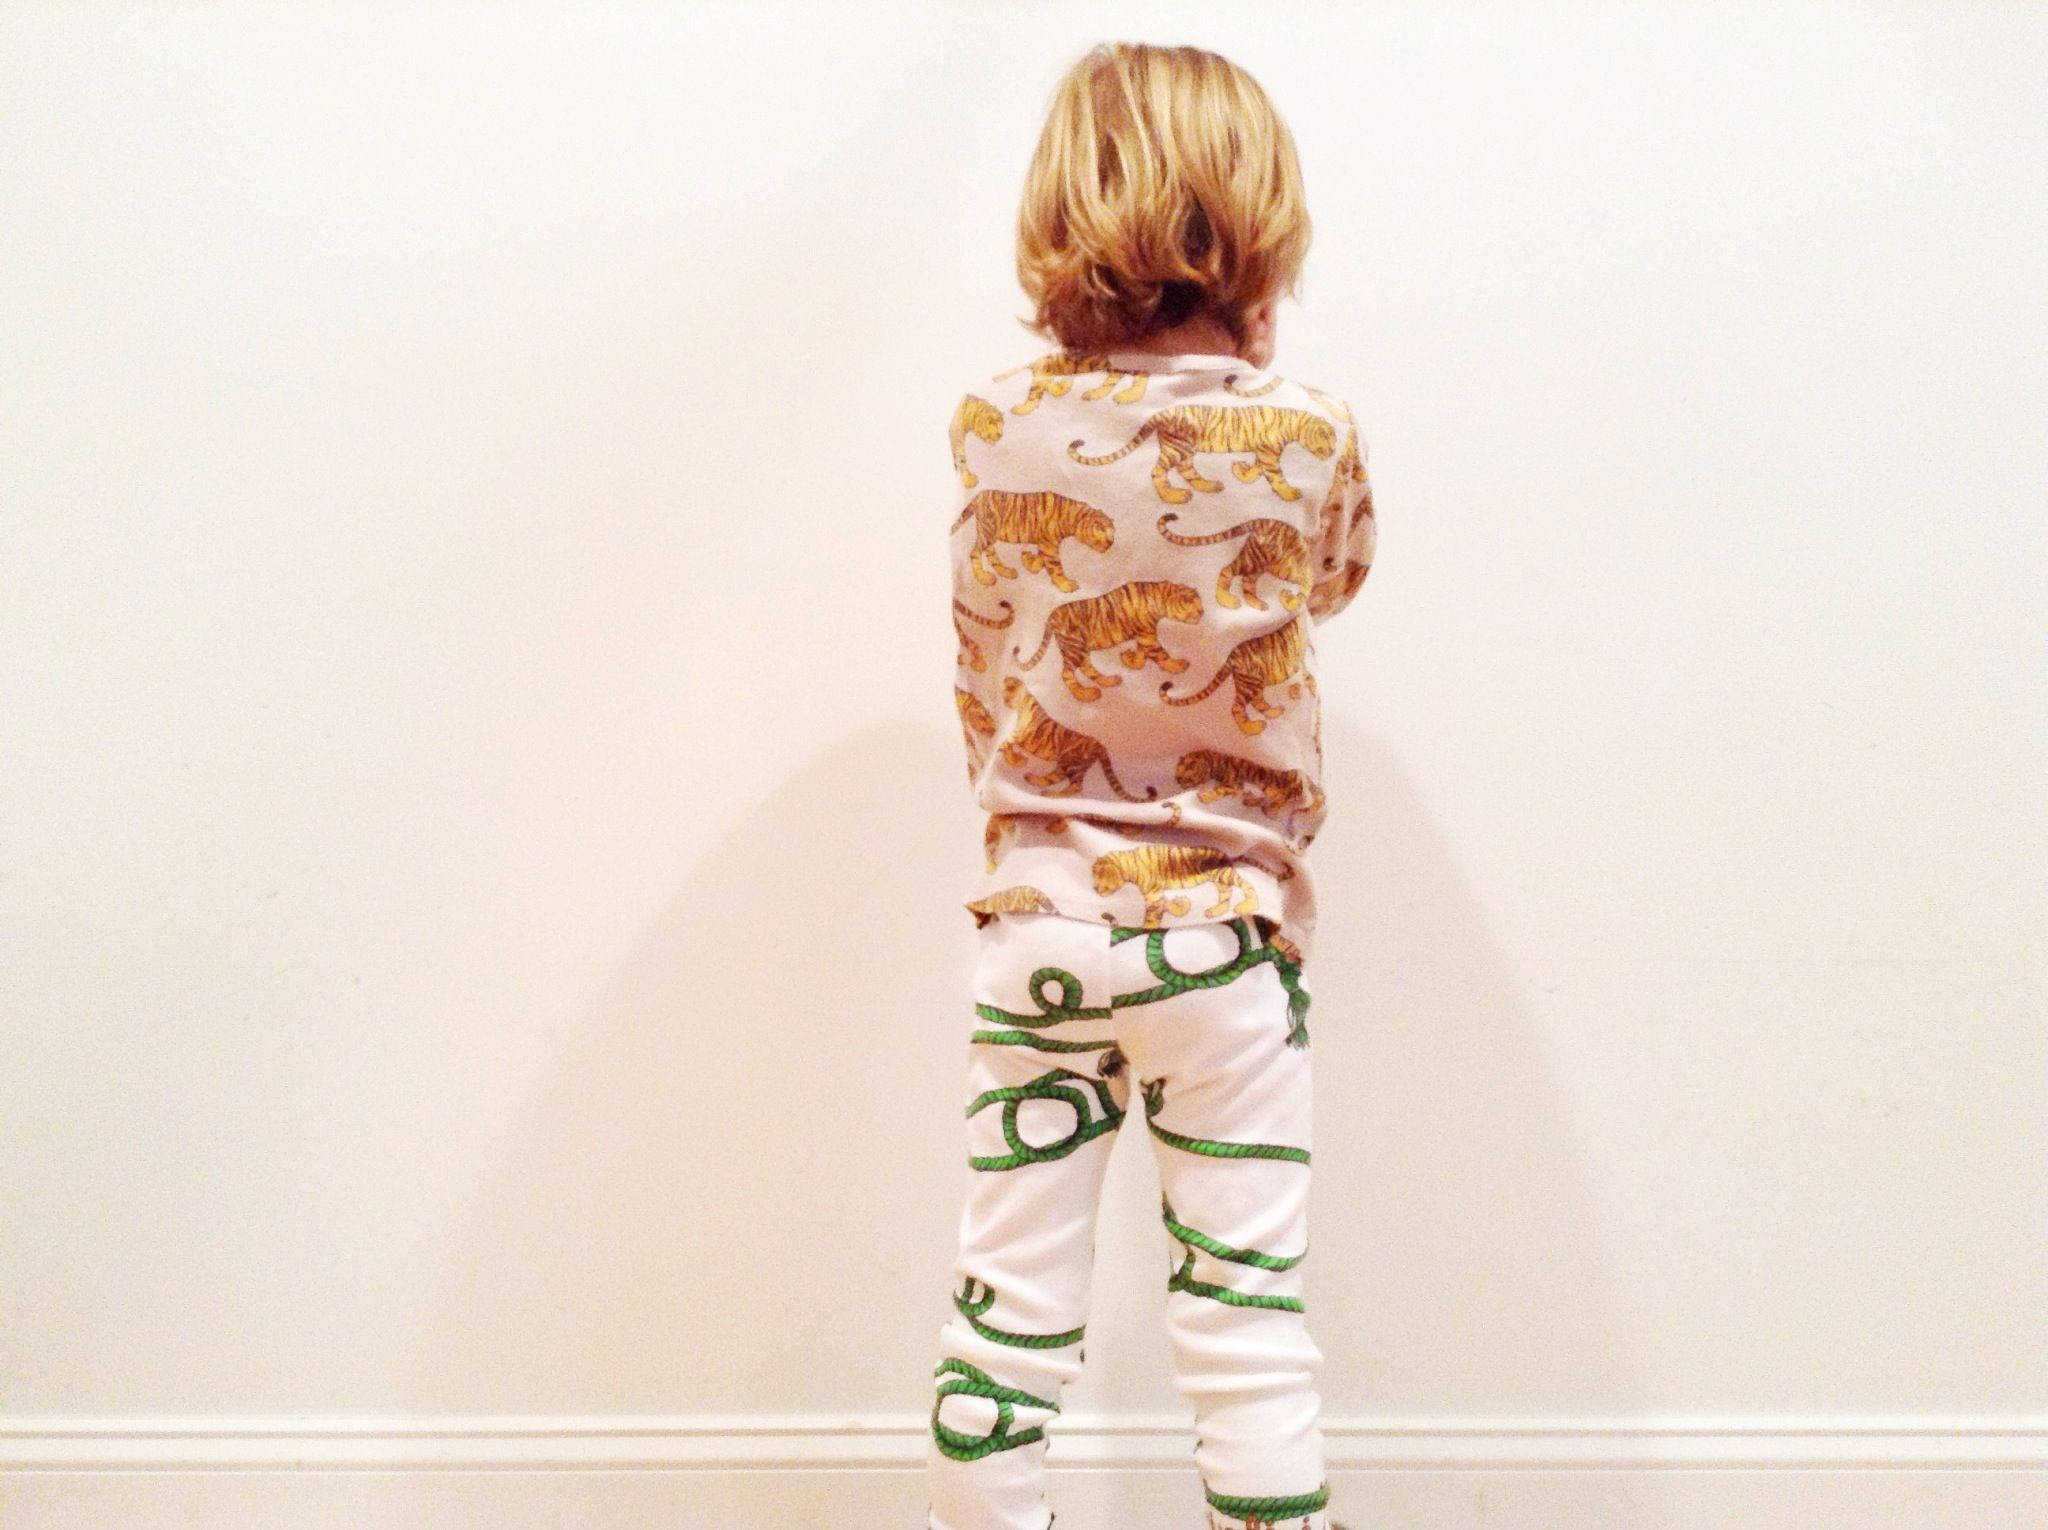 Tiger shirt + Rope leggings. Tips for Mixing Prints for Little Boys - Brittany Ritchie, Style Blogger for Babiekins Magazine